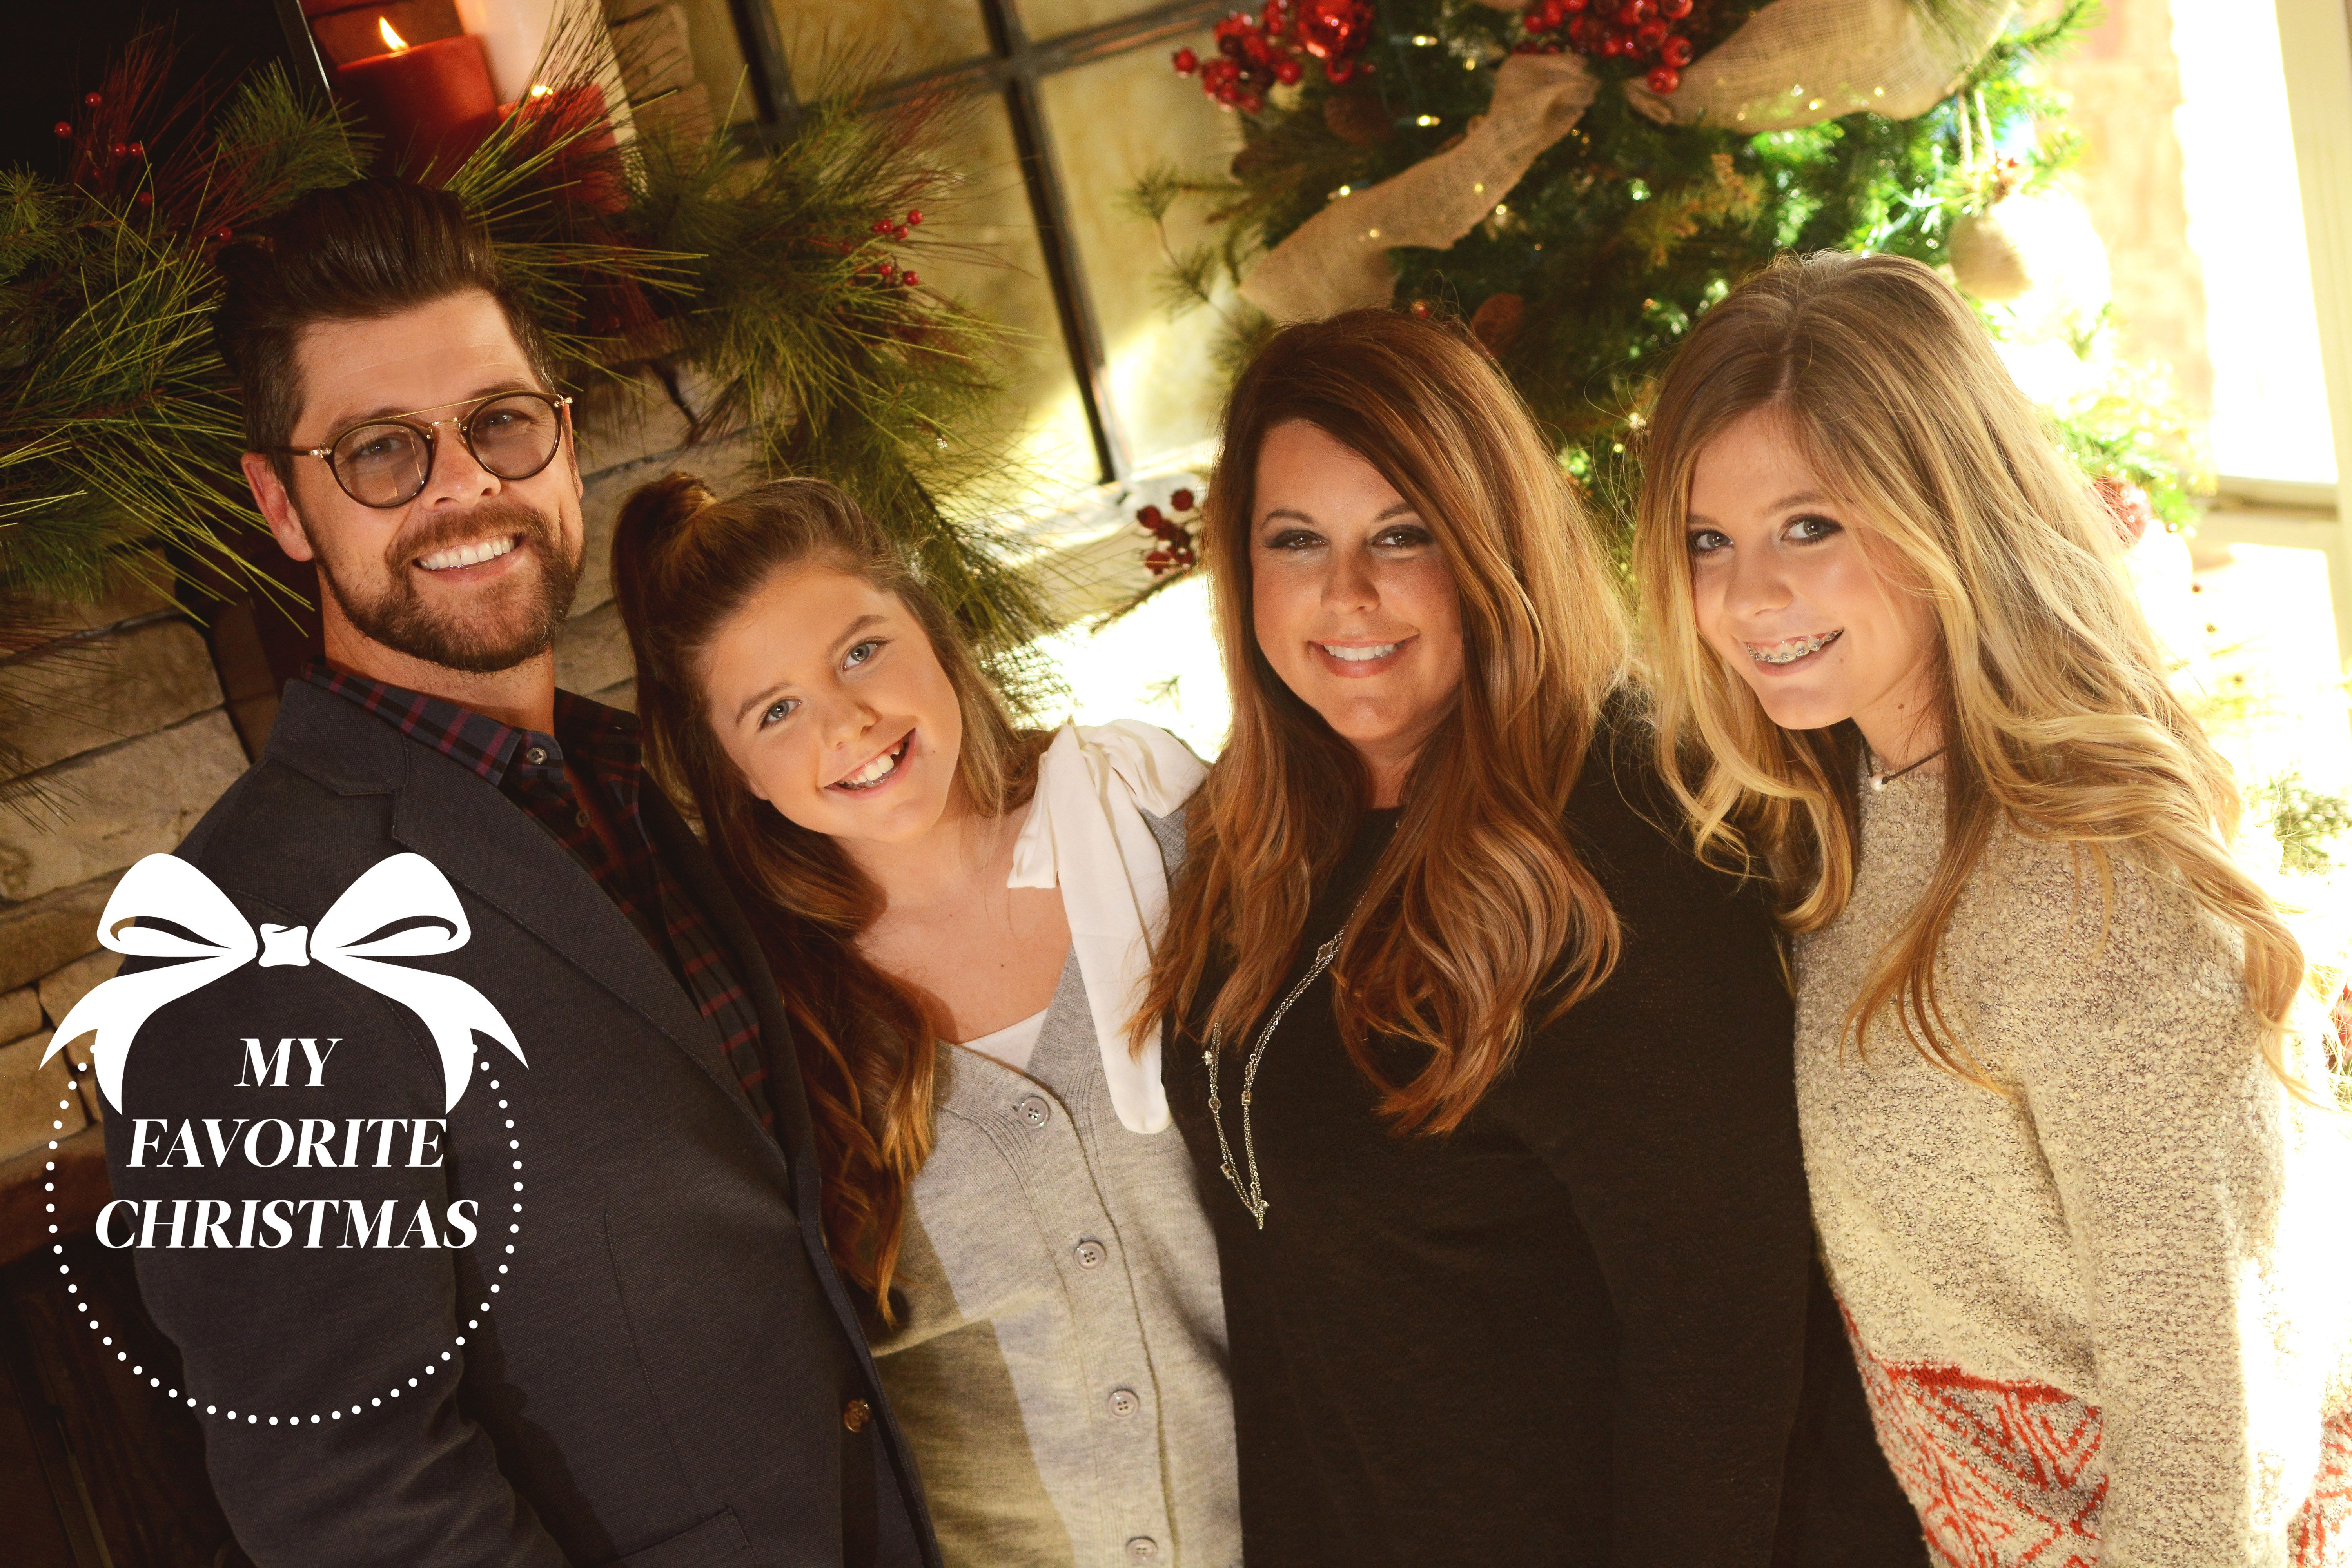 Christian Singer Jason Crabb Reminisces About Christmas at His Late ...